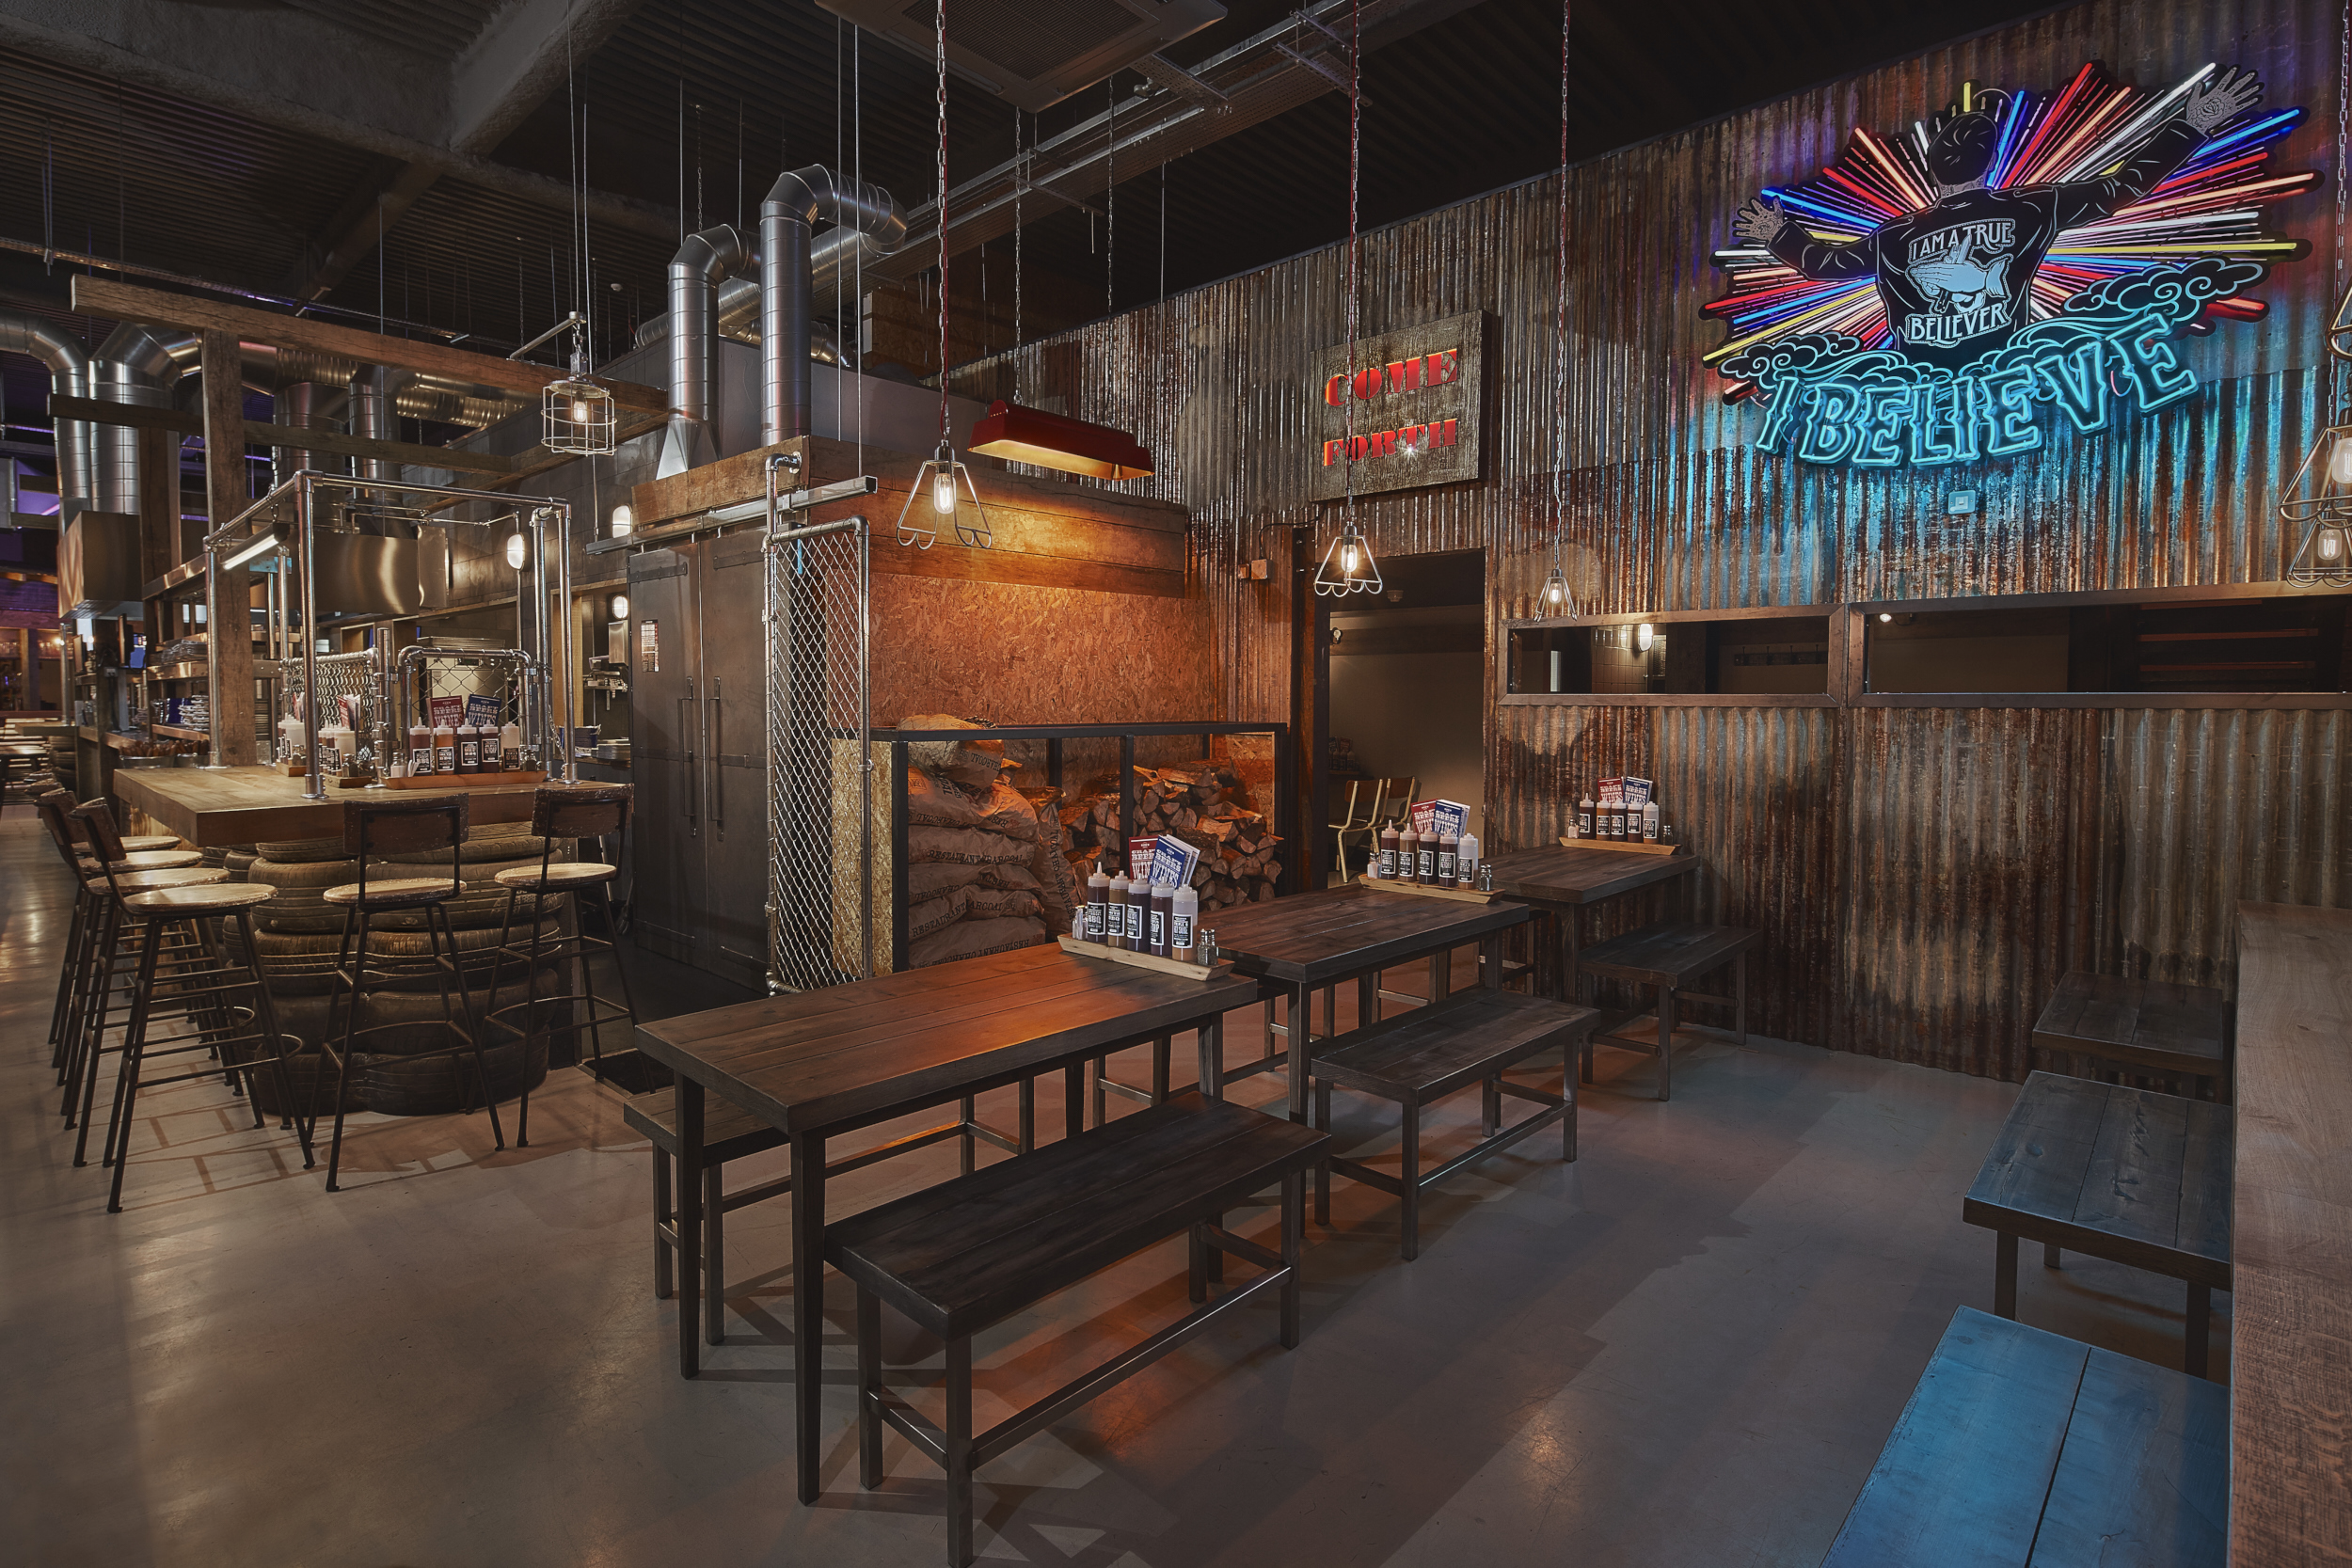 Your new church of true bbq red s nottingham